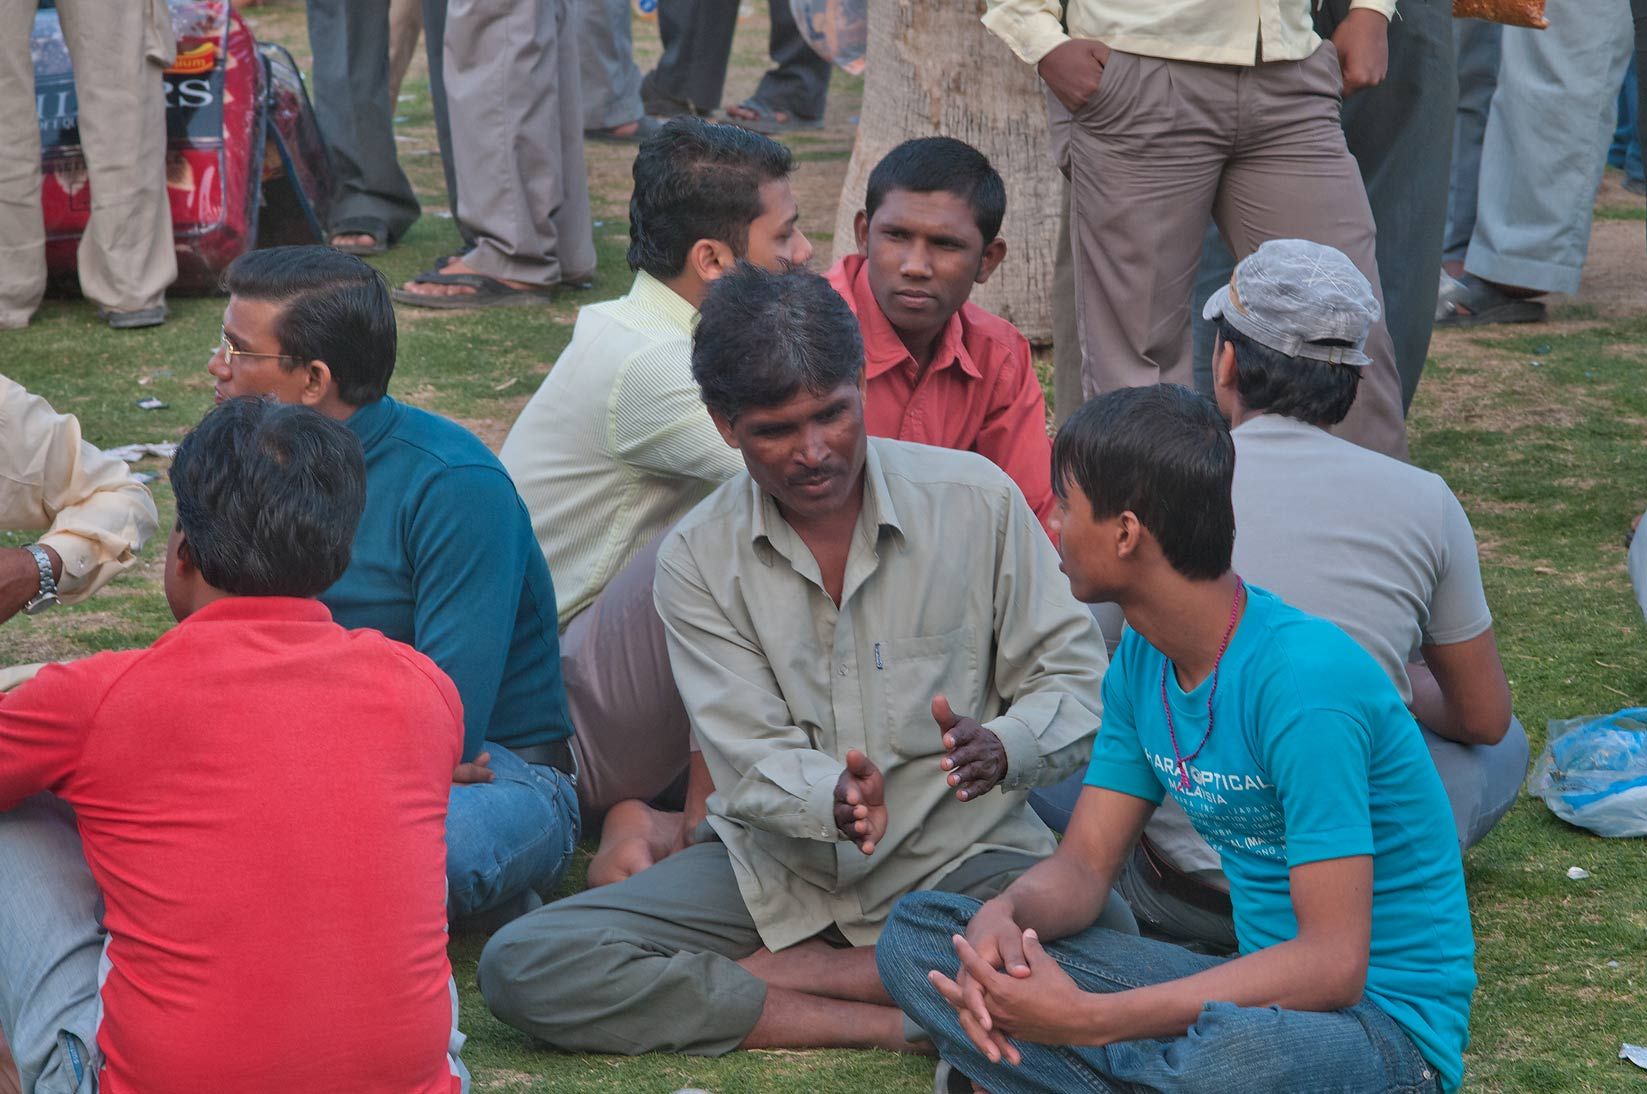 Migrant workers socializing on a lawn near...Al Ghanim on Friday. Doha, Qatar